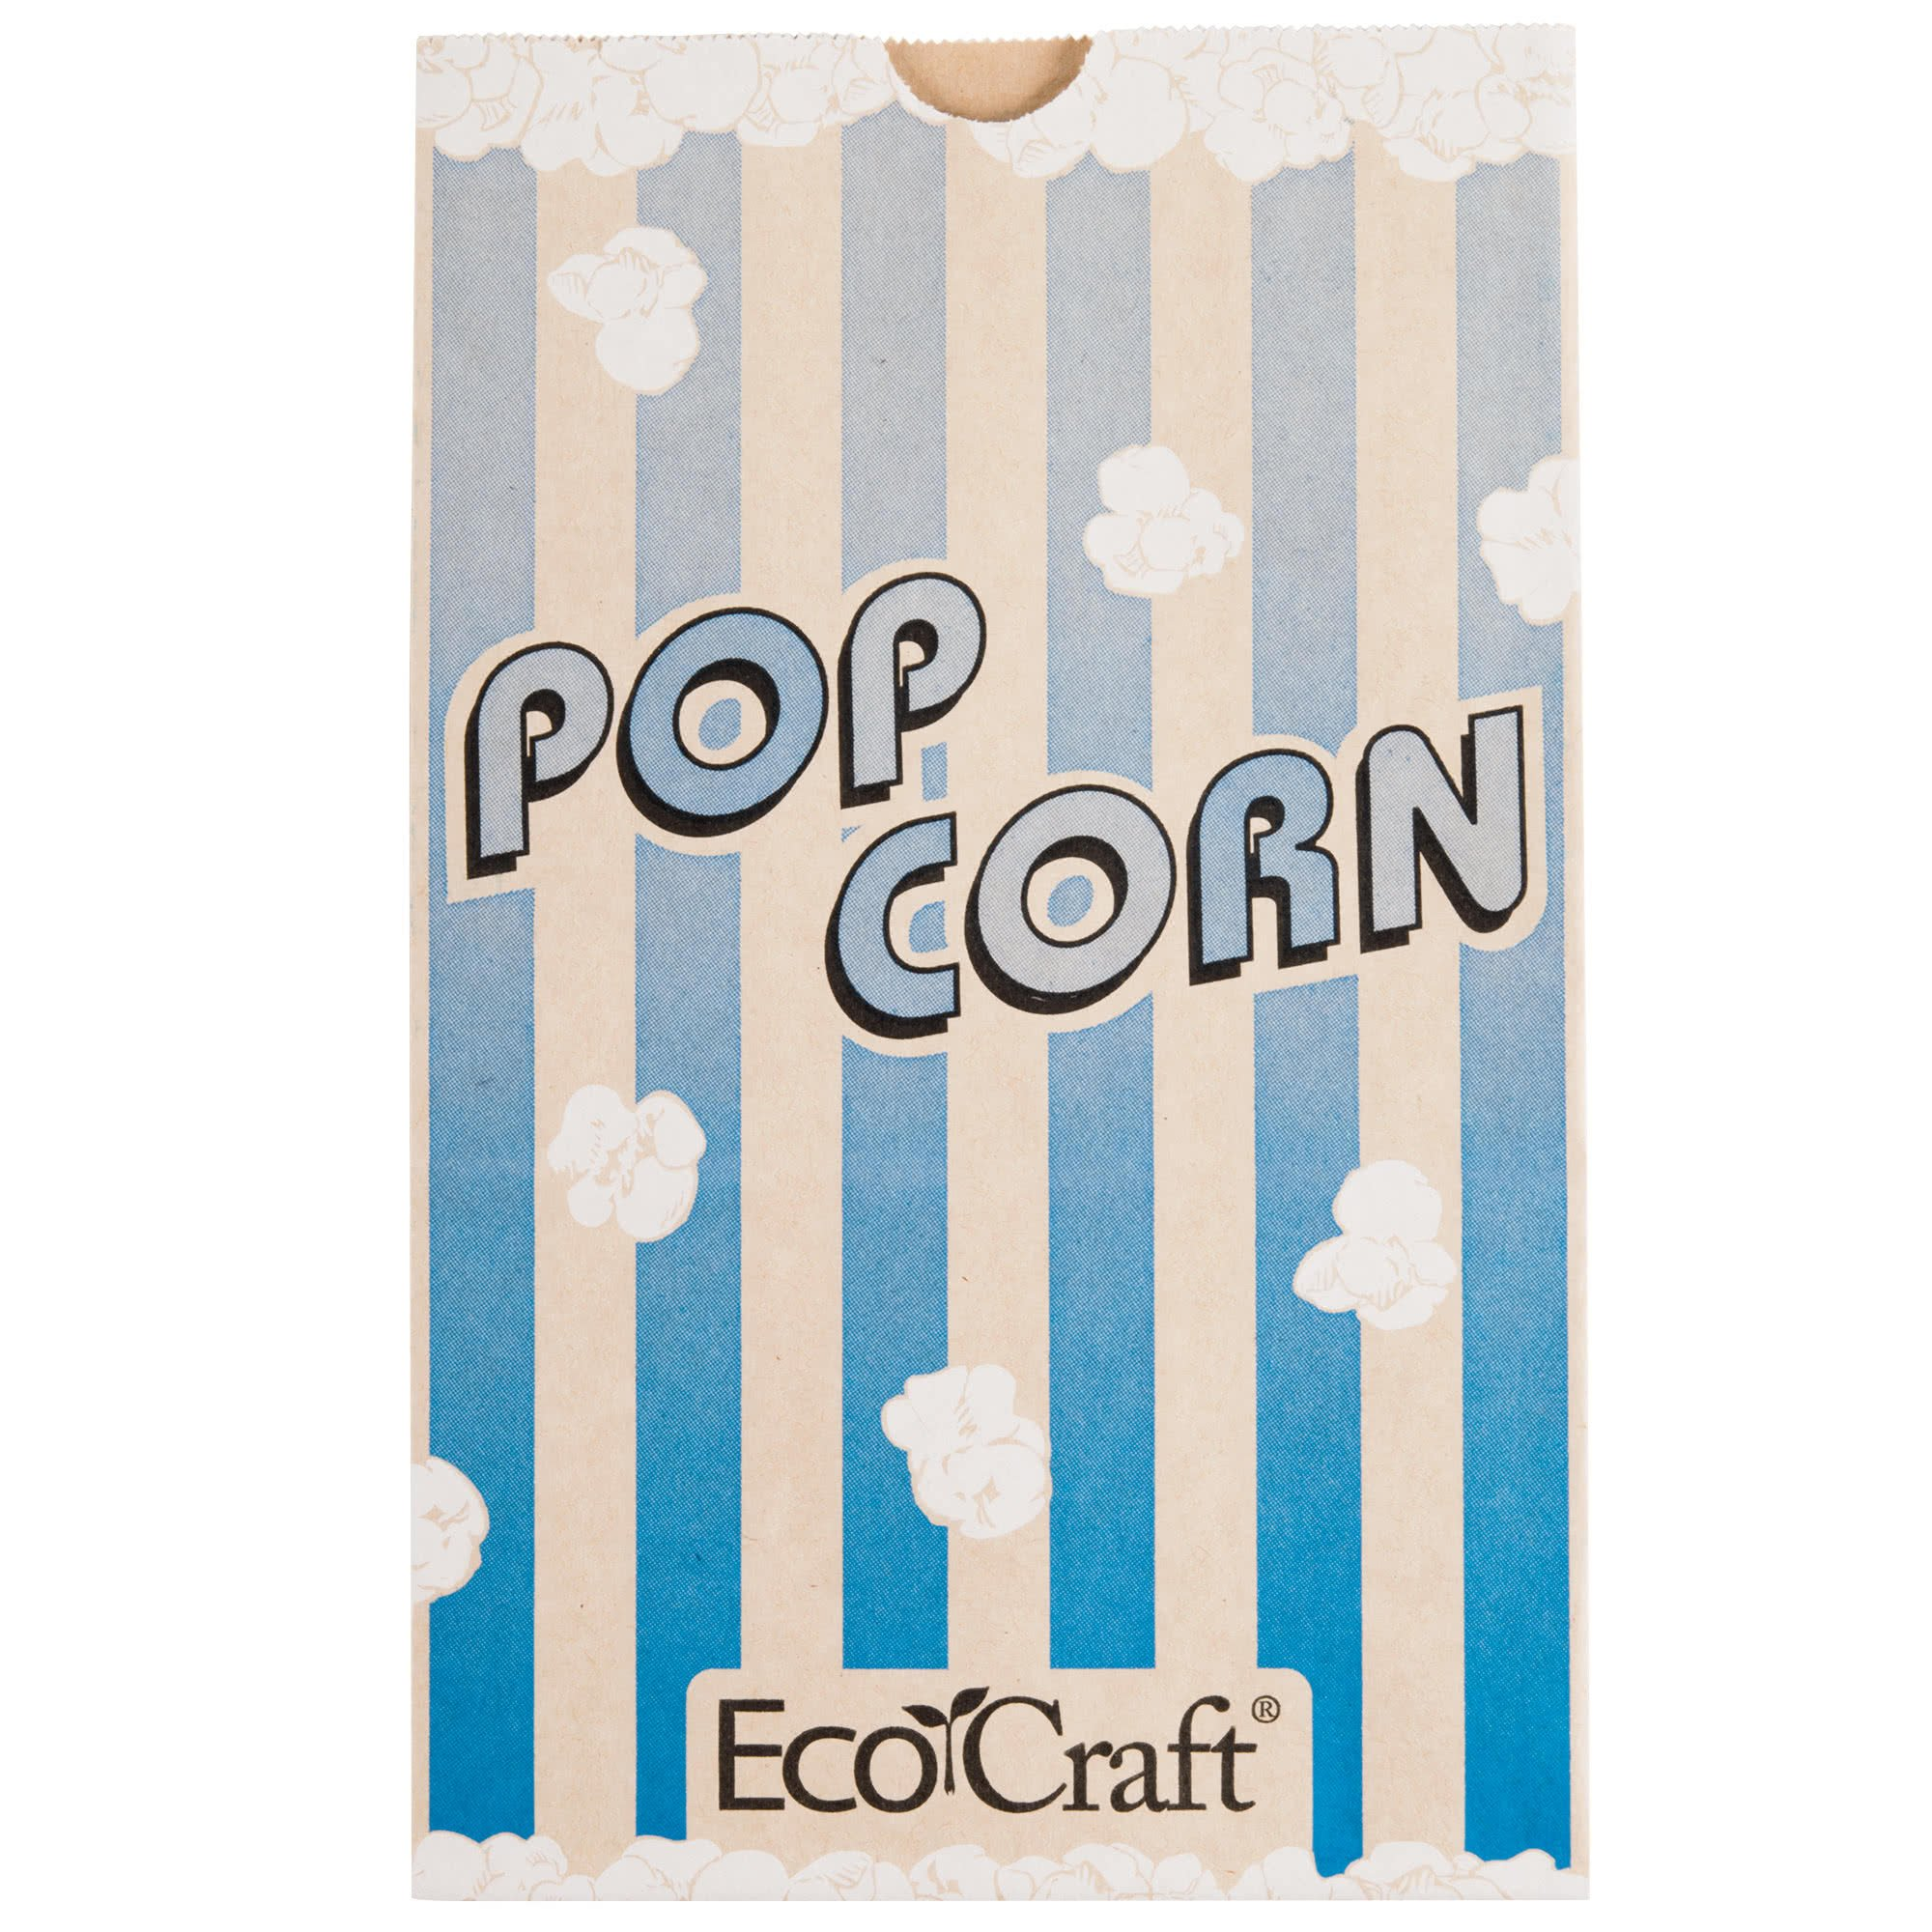 300612 5 1/2'' x 3 1/4'' x 8 5/8'' 85 oz. EcoCraft Popcorn Bag - 500/Case By TableTop King